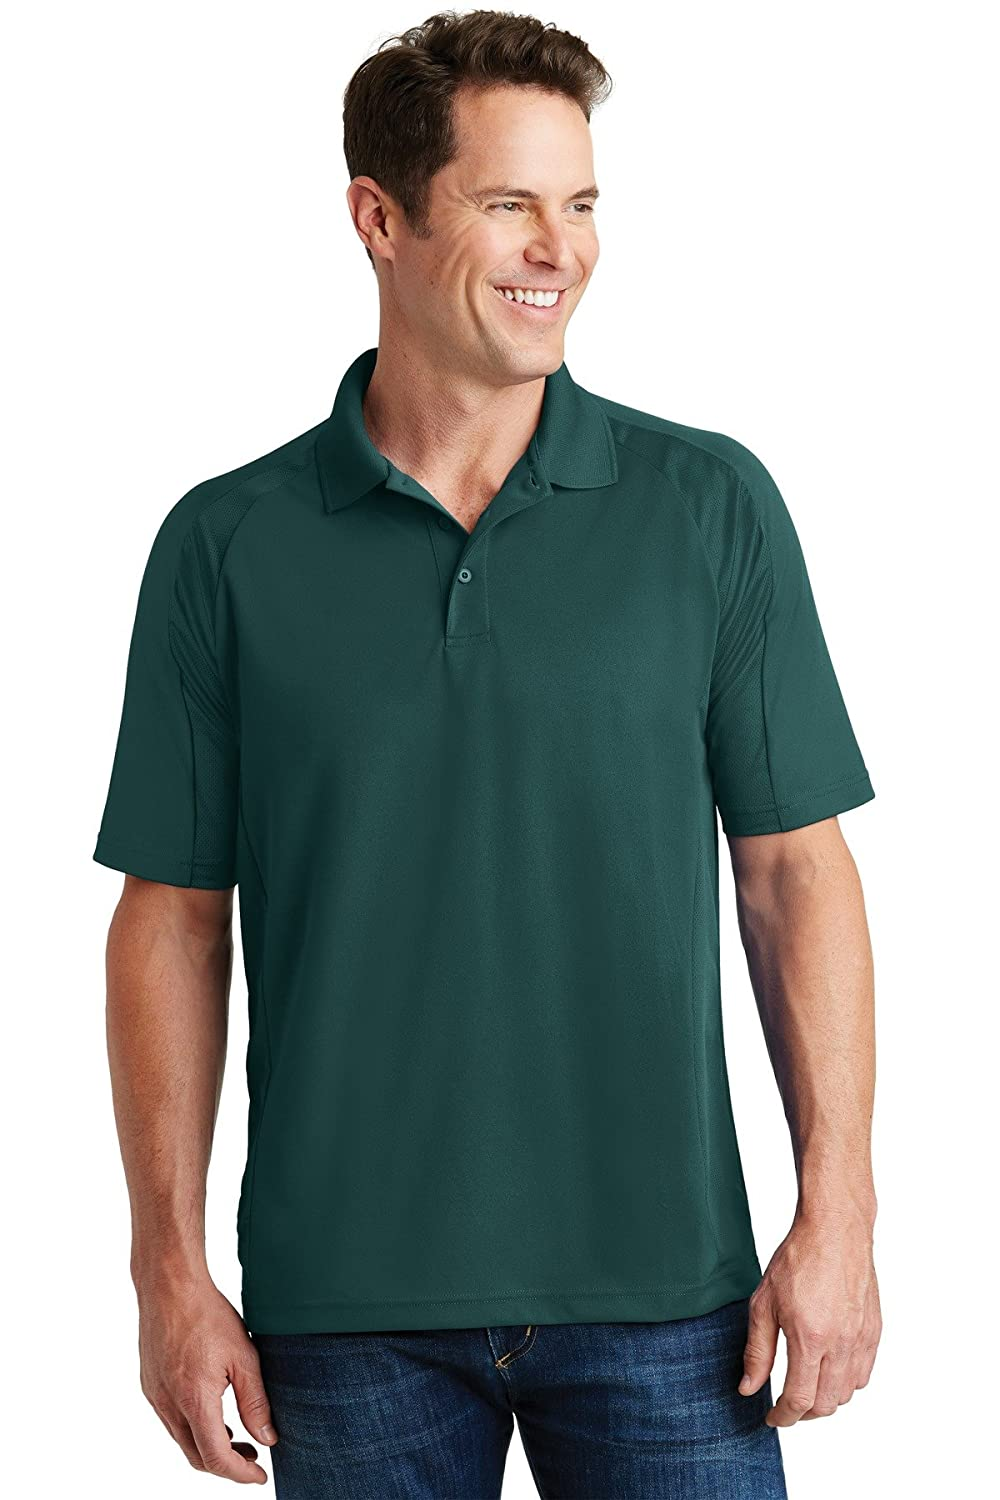 2XL Sport-Tek Dri-Mesh Pro Polo Shirt Dark Green